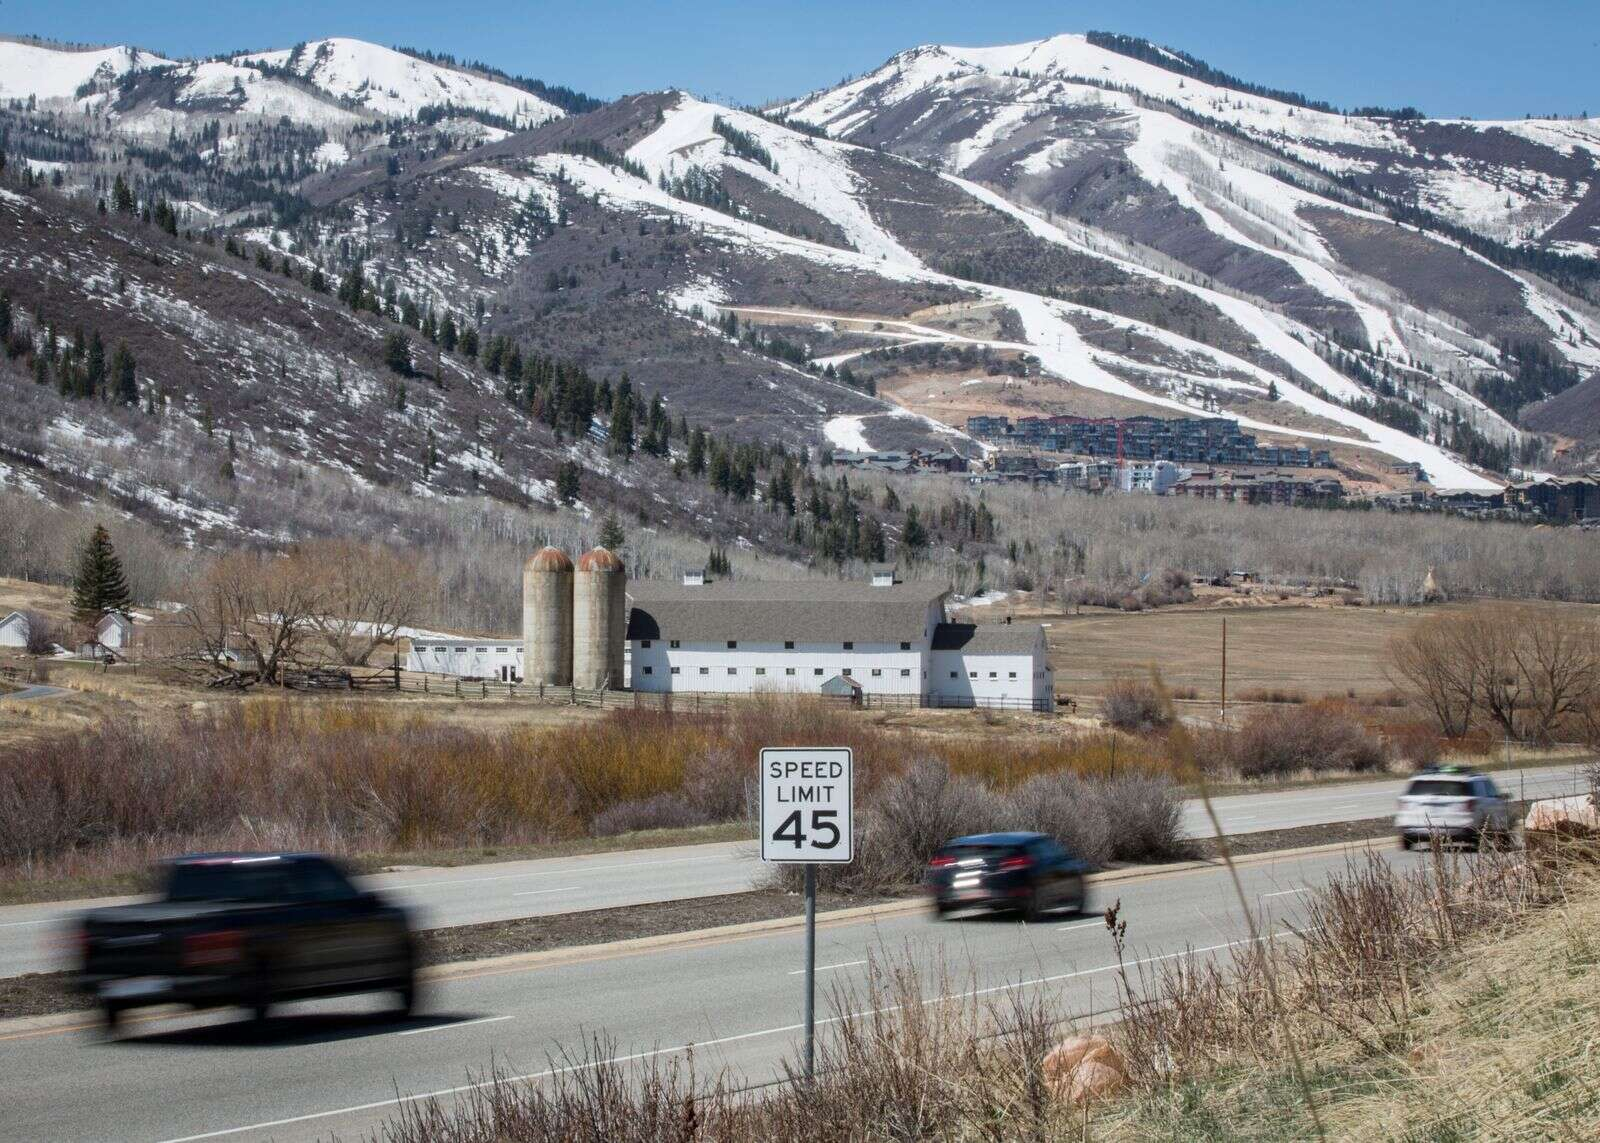 Park City police told of speeding driver swerving, using center lane to pass